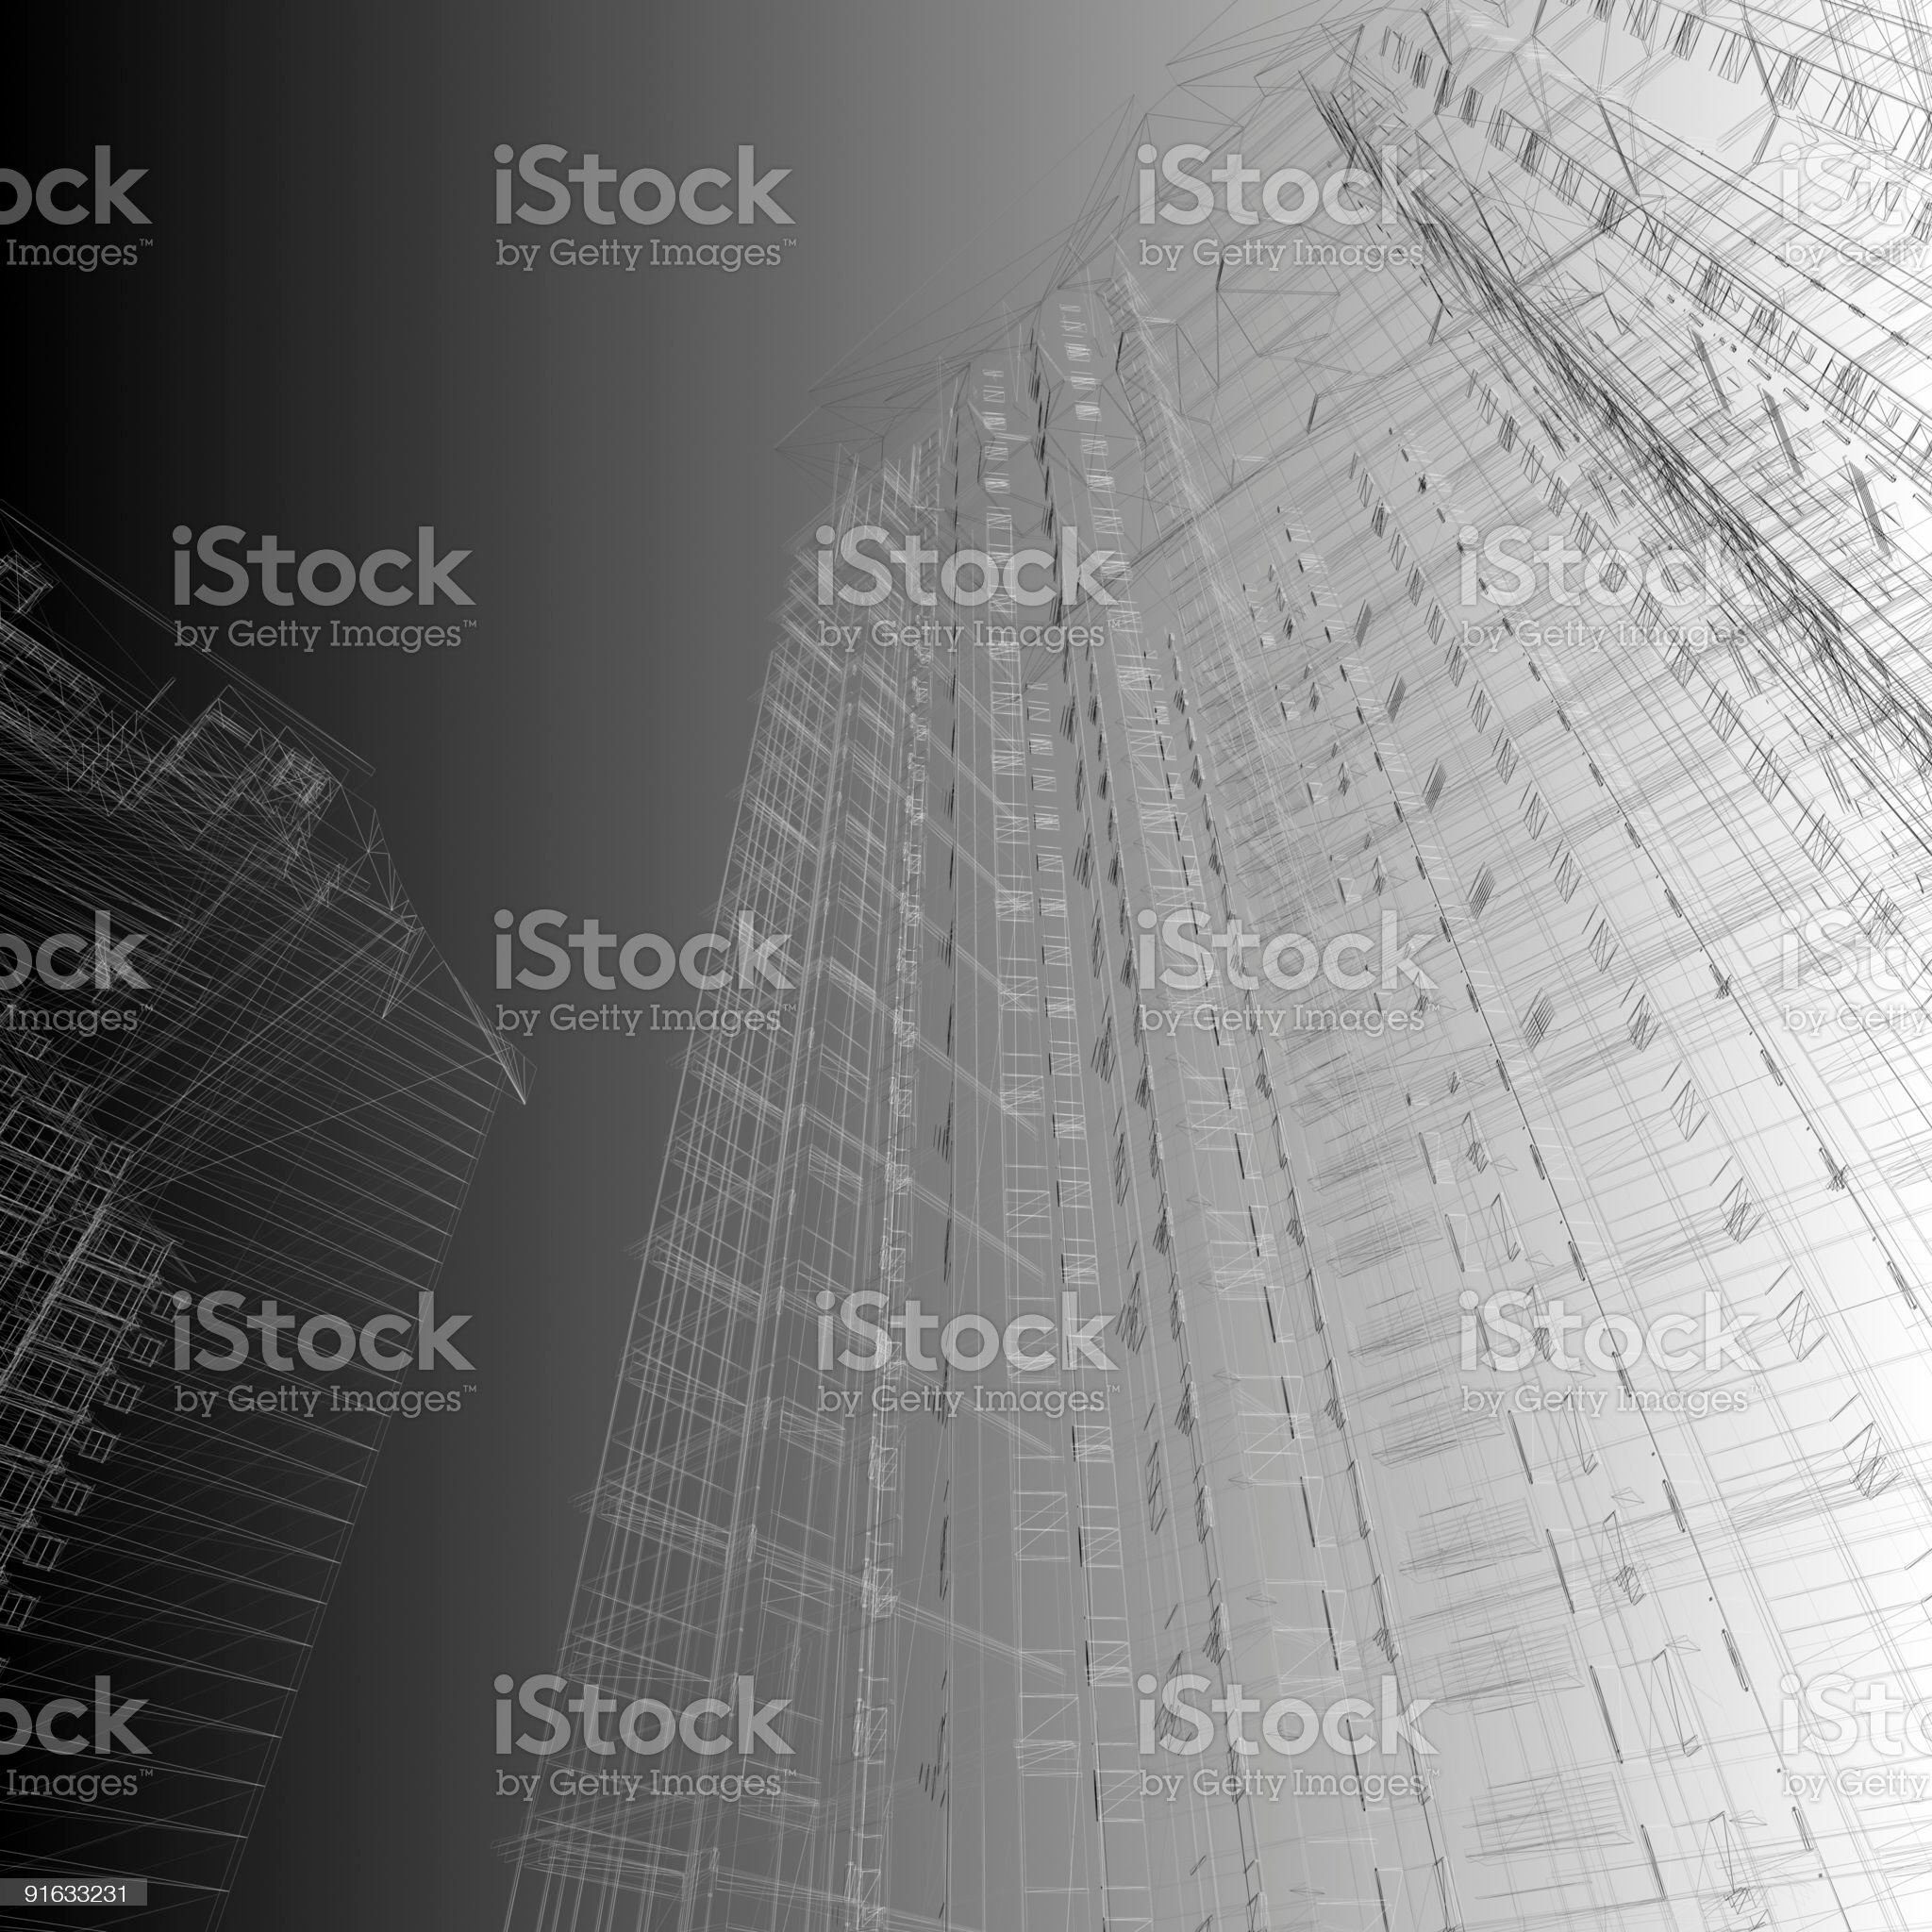 Skyscraper wireframe (on gradient background) royalty-free stock photo